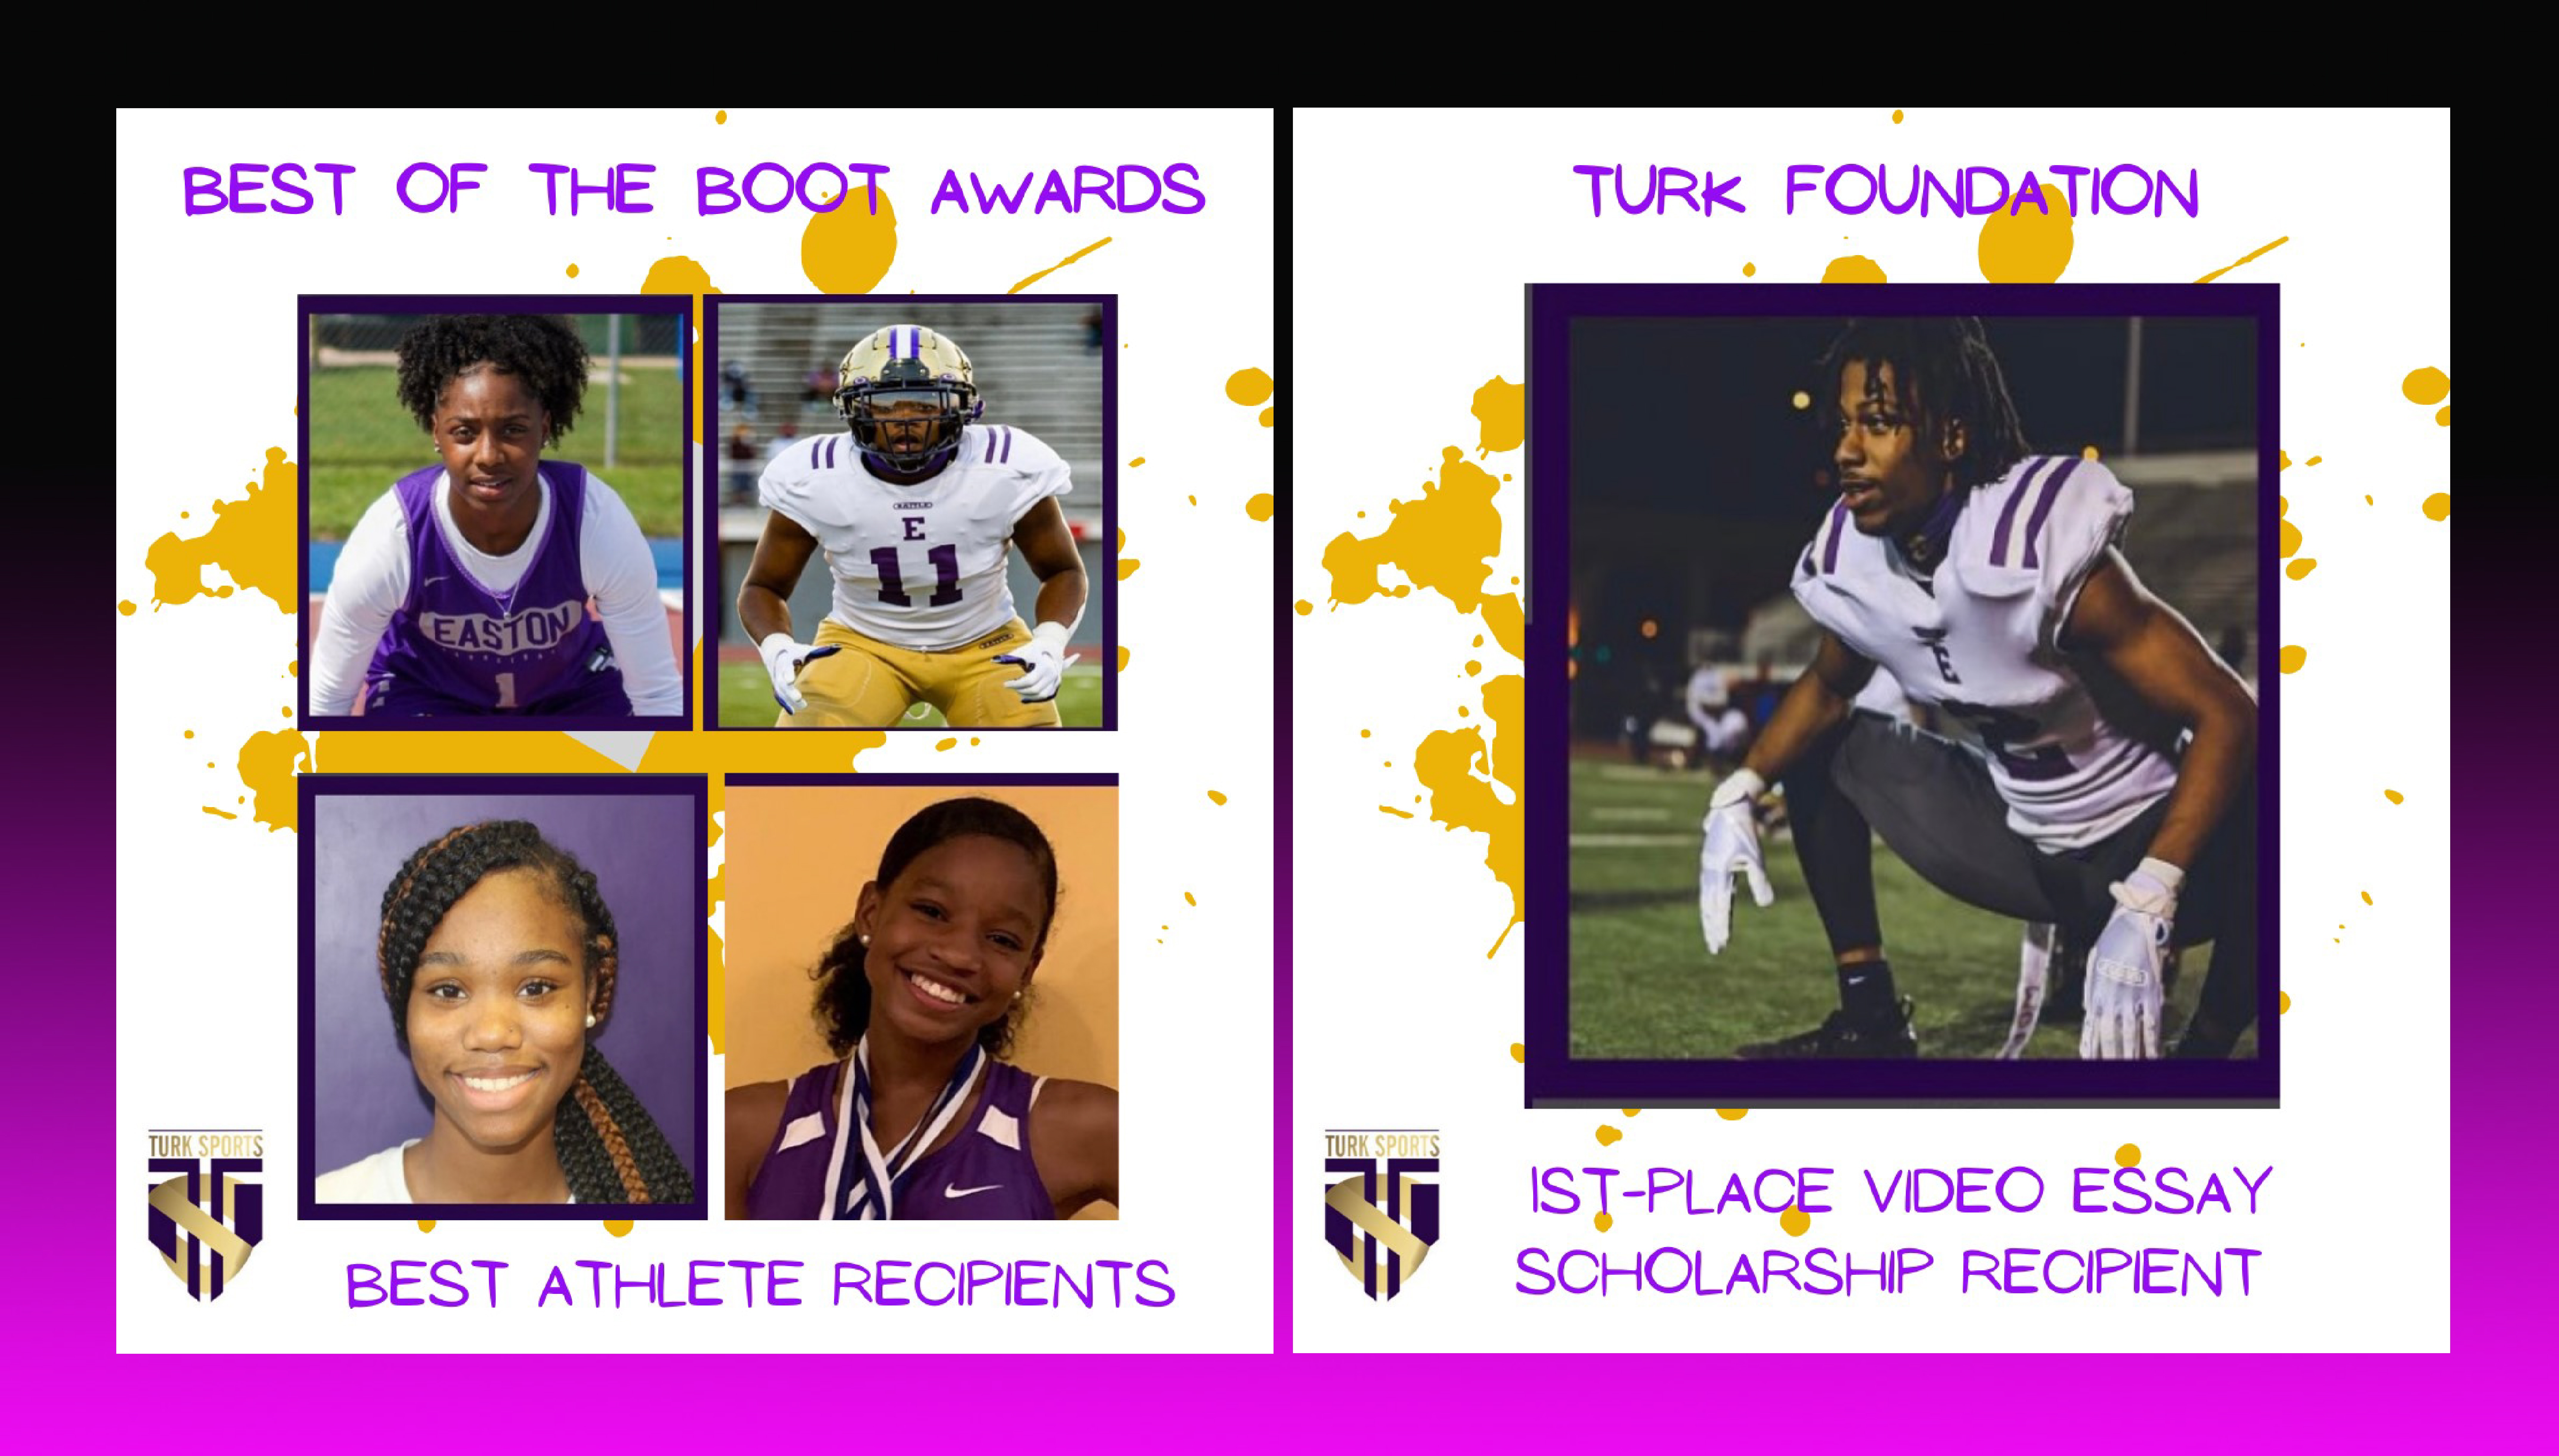 Eagle Athletes Win Best of the Boot Awards